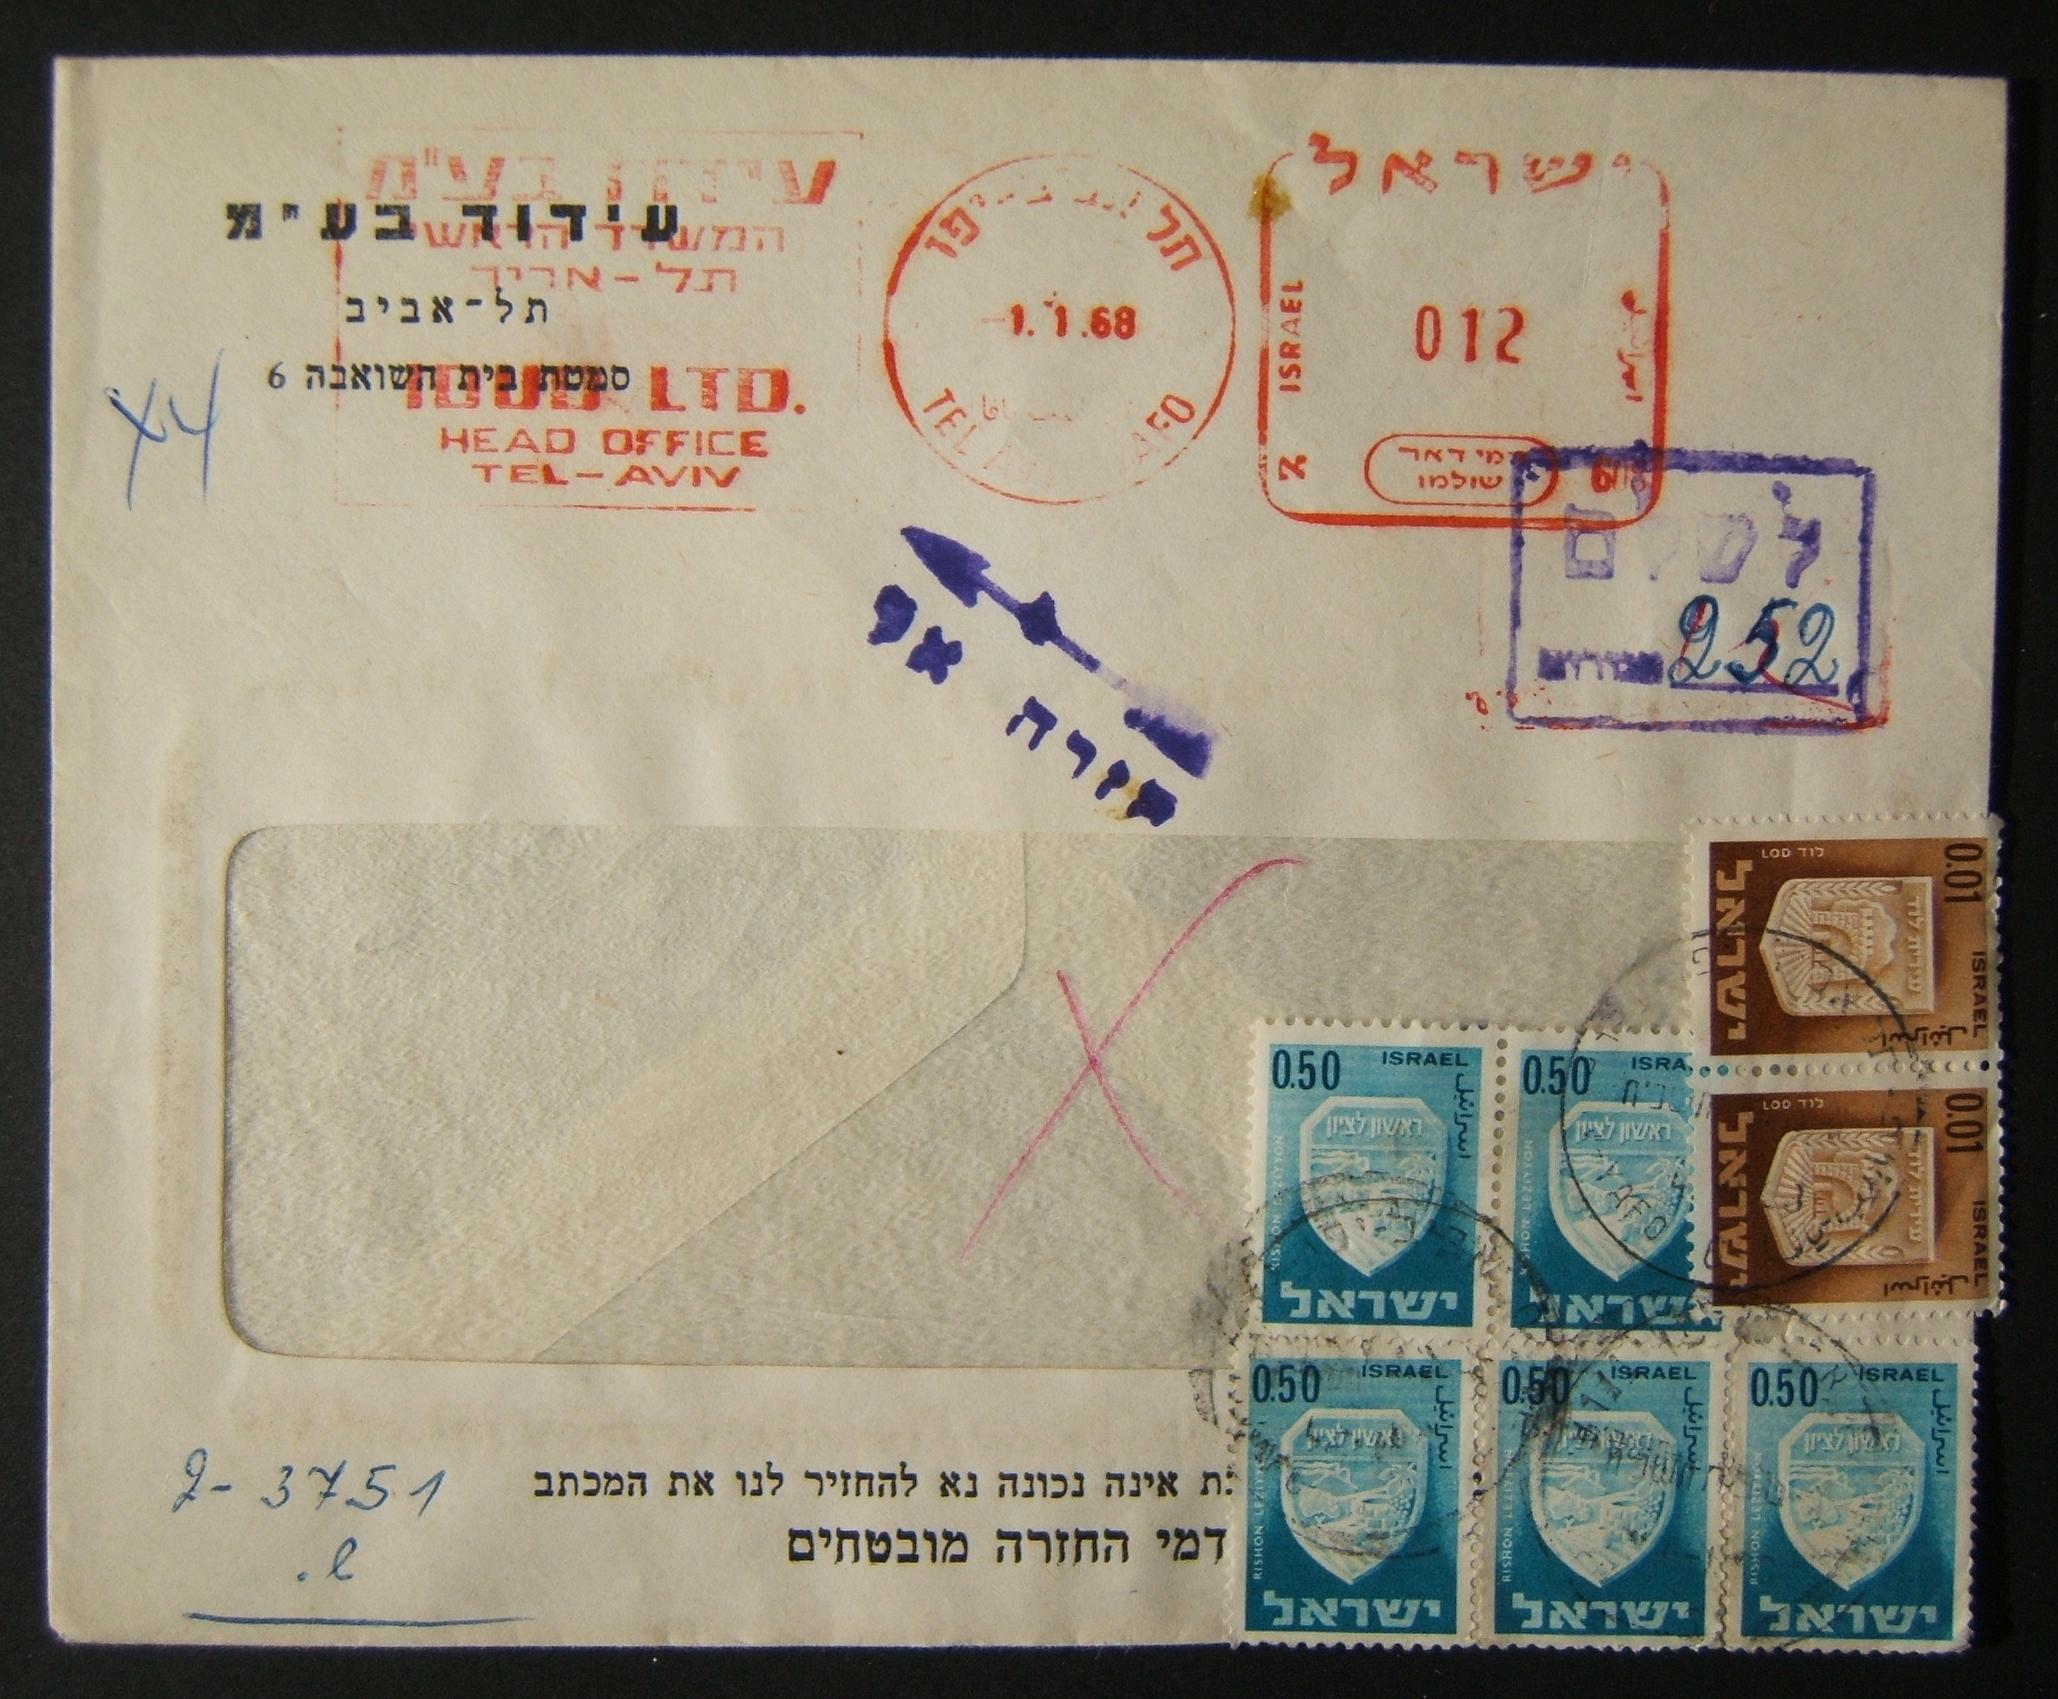 1968 domestic 'top of the pile' taxed franking: 1-1-68 printed matter cover ex TLV branch of Idud Ltd. and franked by meter payment at the DO-12 period 12 Ag PM rate, but returned